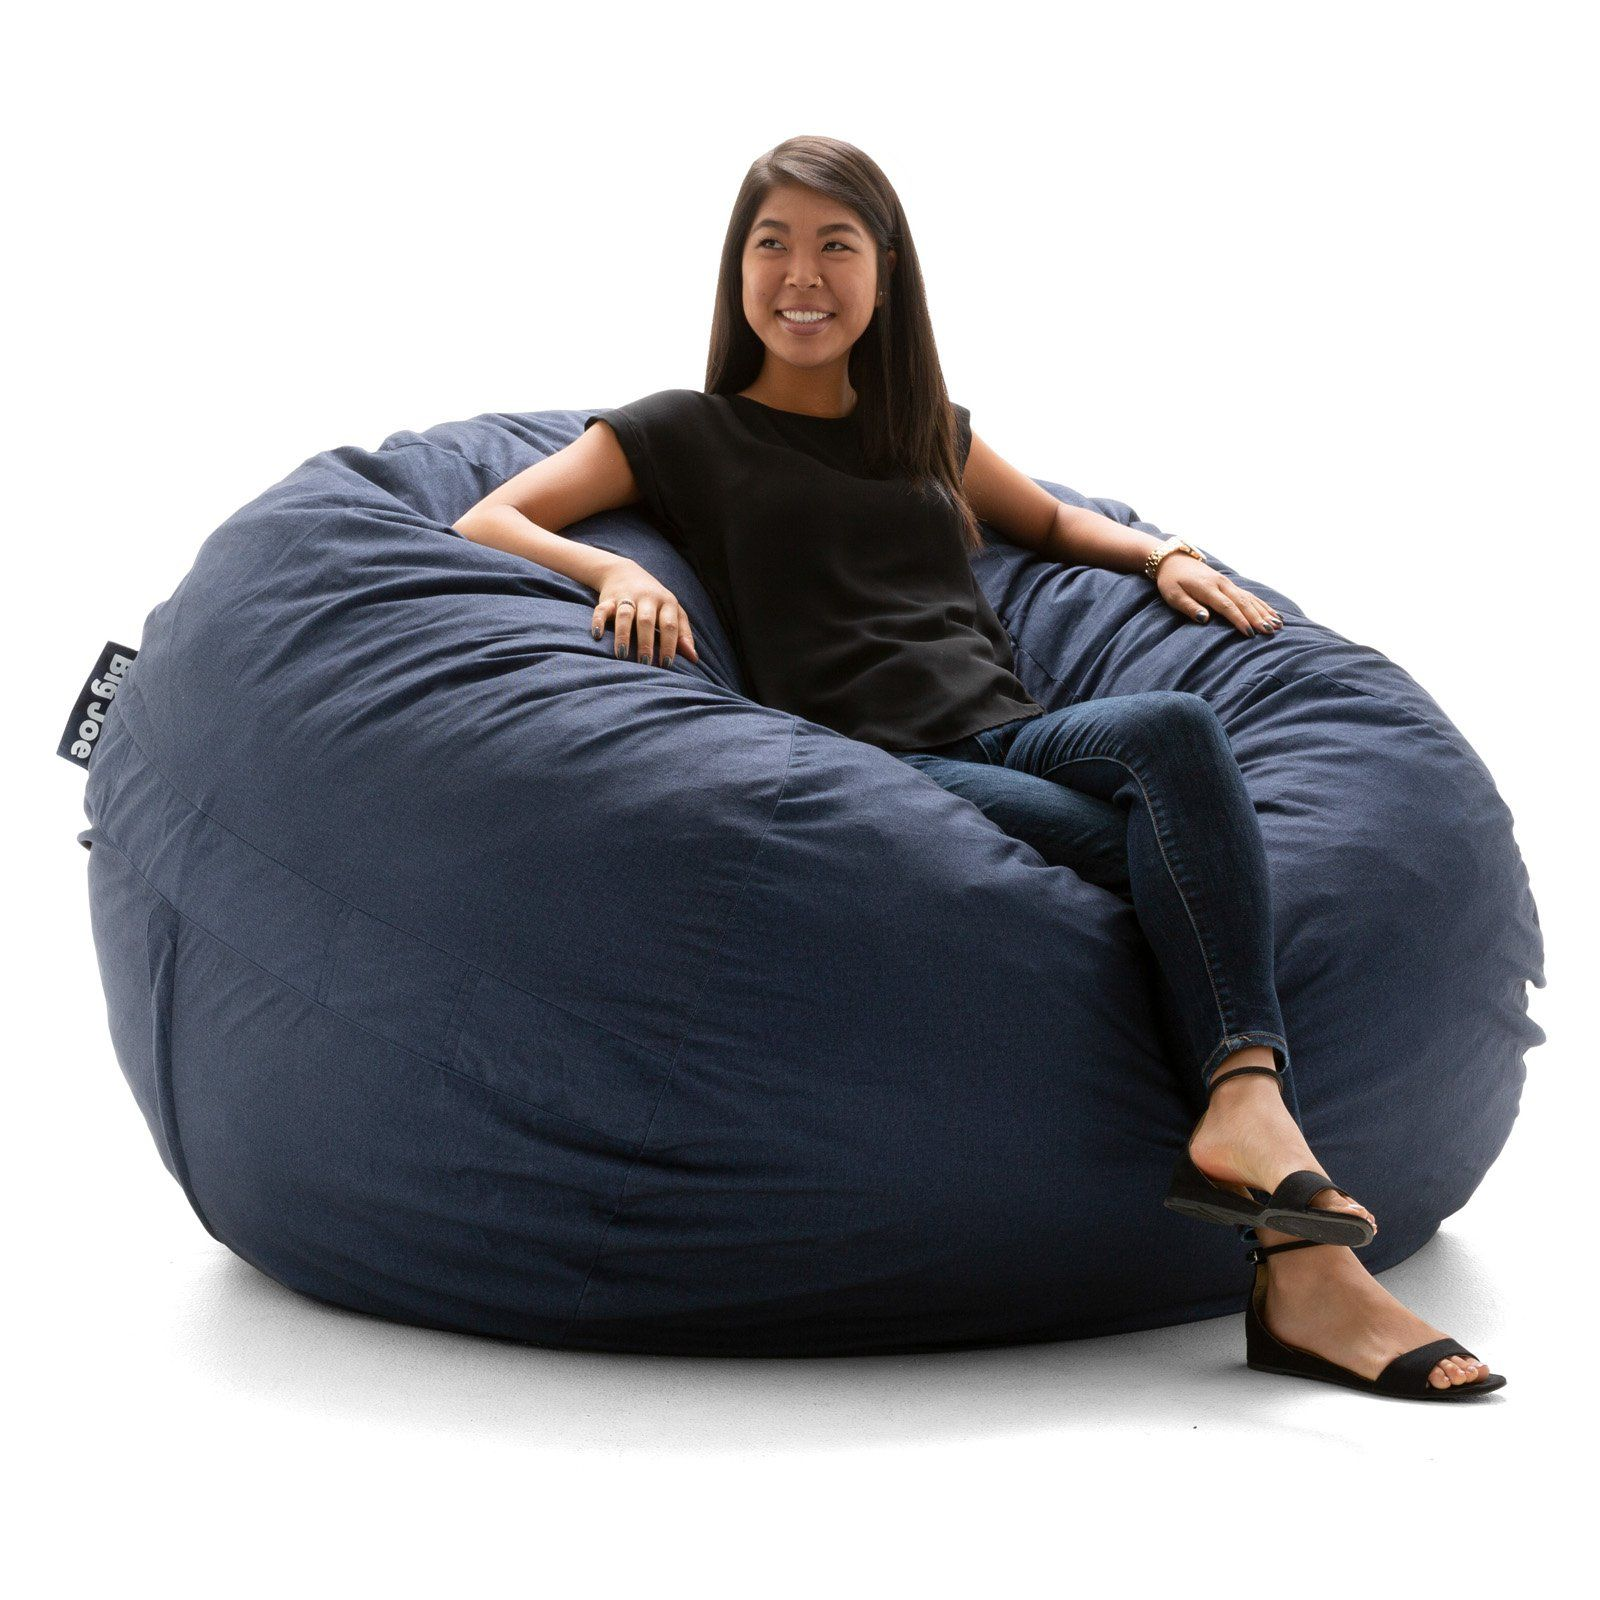 Phenomenal Big Joe Super Fuf Bean Bag Chair Blue Products In 2019 Caraccident5 Cool Chair Designs And Ideas Caraccident5Info